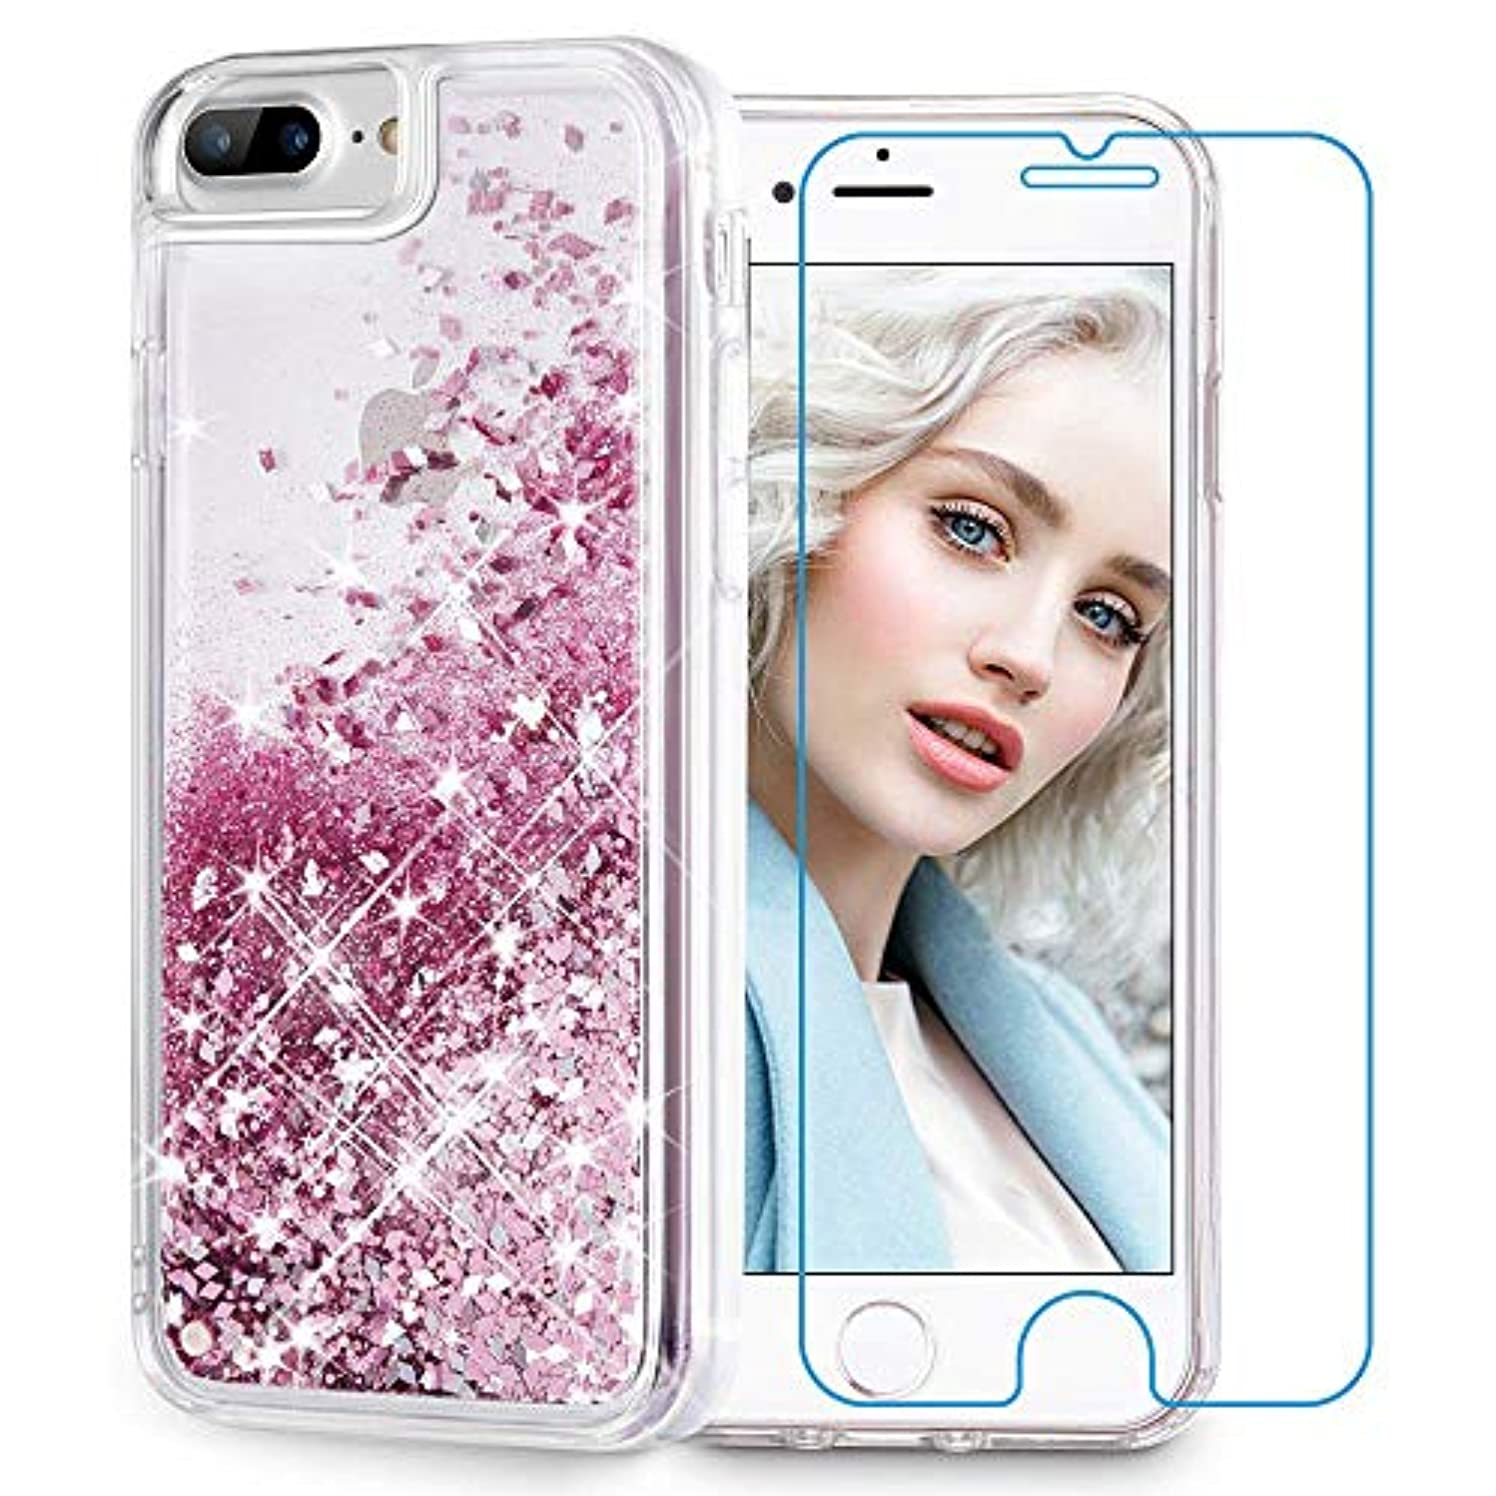 Maxdara iPhone 8 Plus Case, iPhone 7 Plus Glitter Liquid Case [Tempered Glass Screen Protector] Floating Bling Sparkle Luxury Pretty Girls Women Case for iPhone 6 Plus/6s Plus/7 Plus/8 Plus (Rosegold)